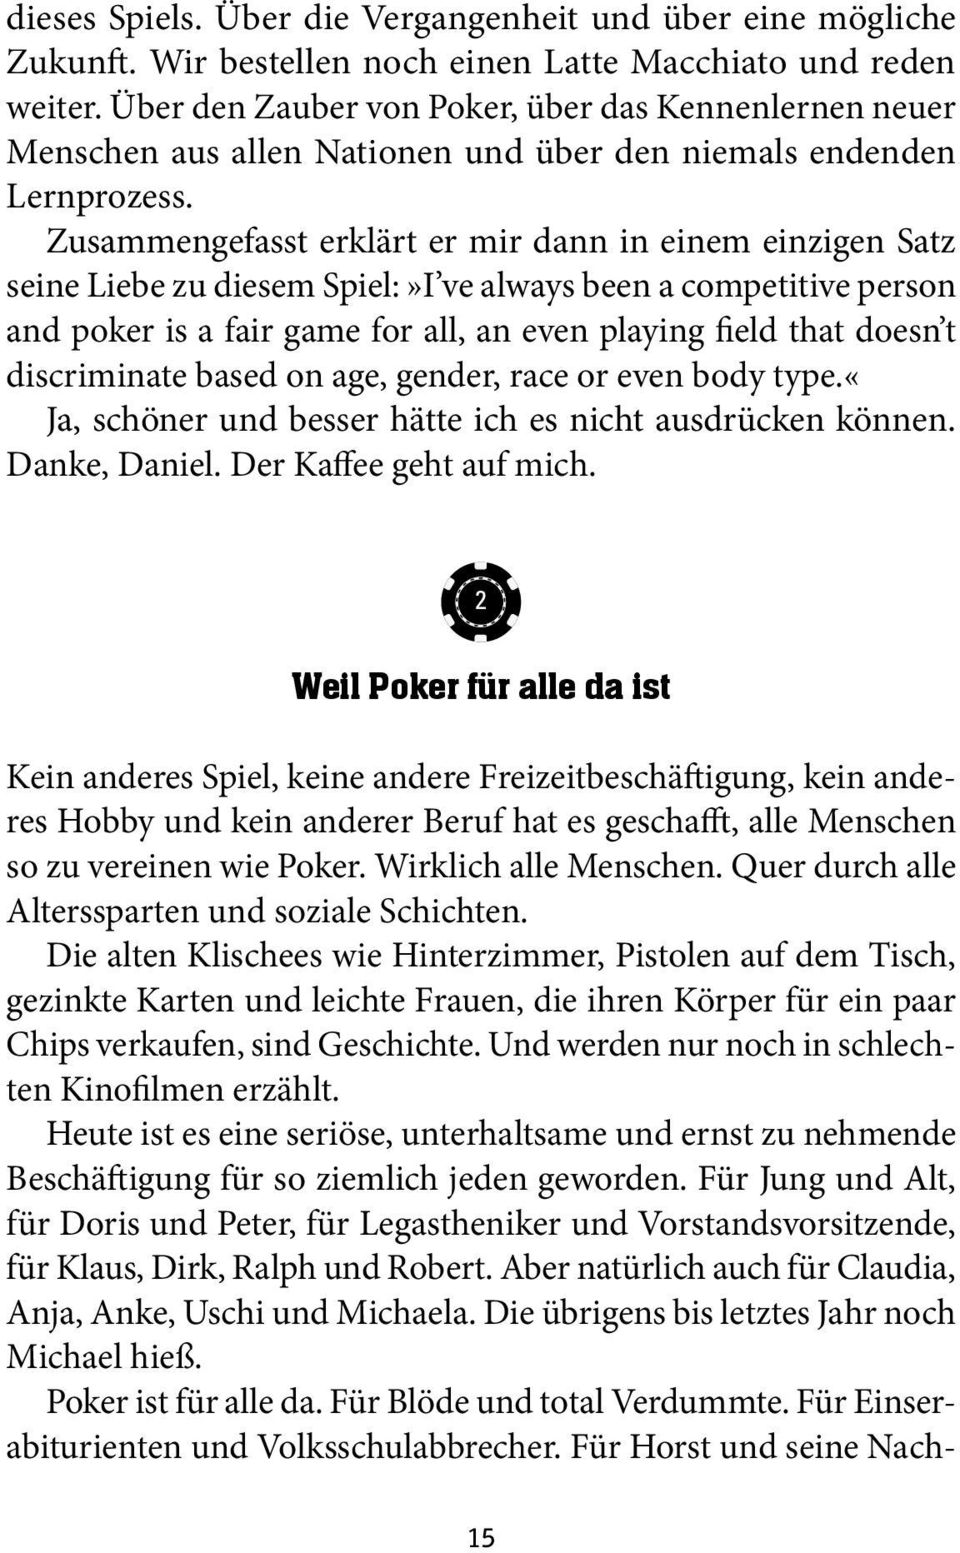 Zusammengefasst erklärt er mir dann in einem einzigen Satz seine Liebe zu diesem Spiel:»I ve always been a competitive person and poker is a fair game for all, an even playing field that doesn t